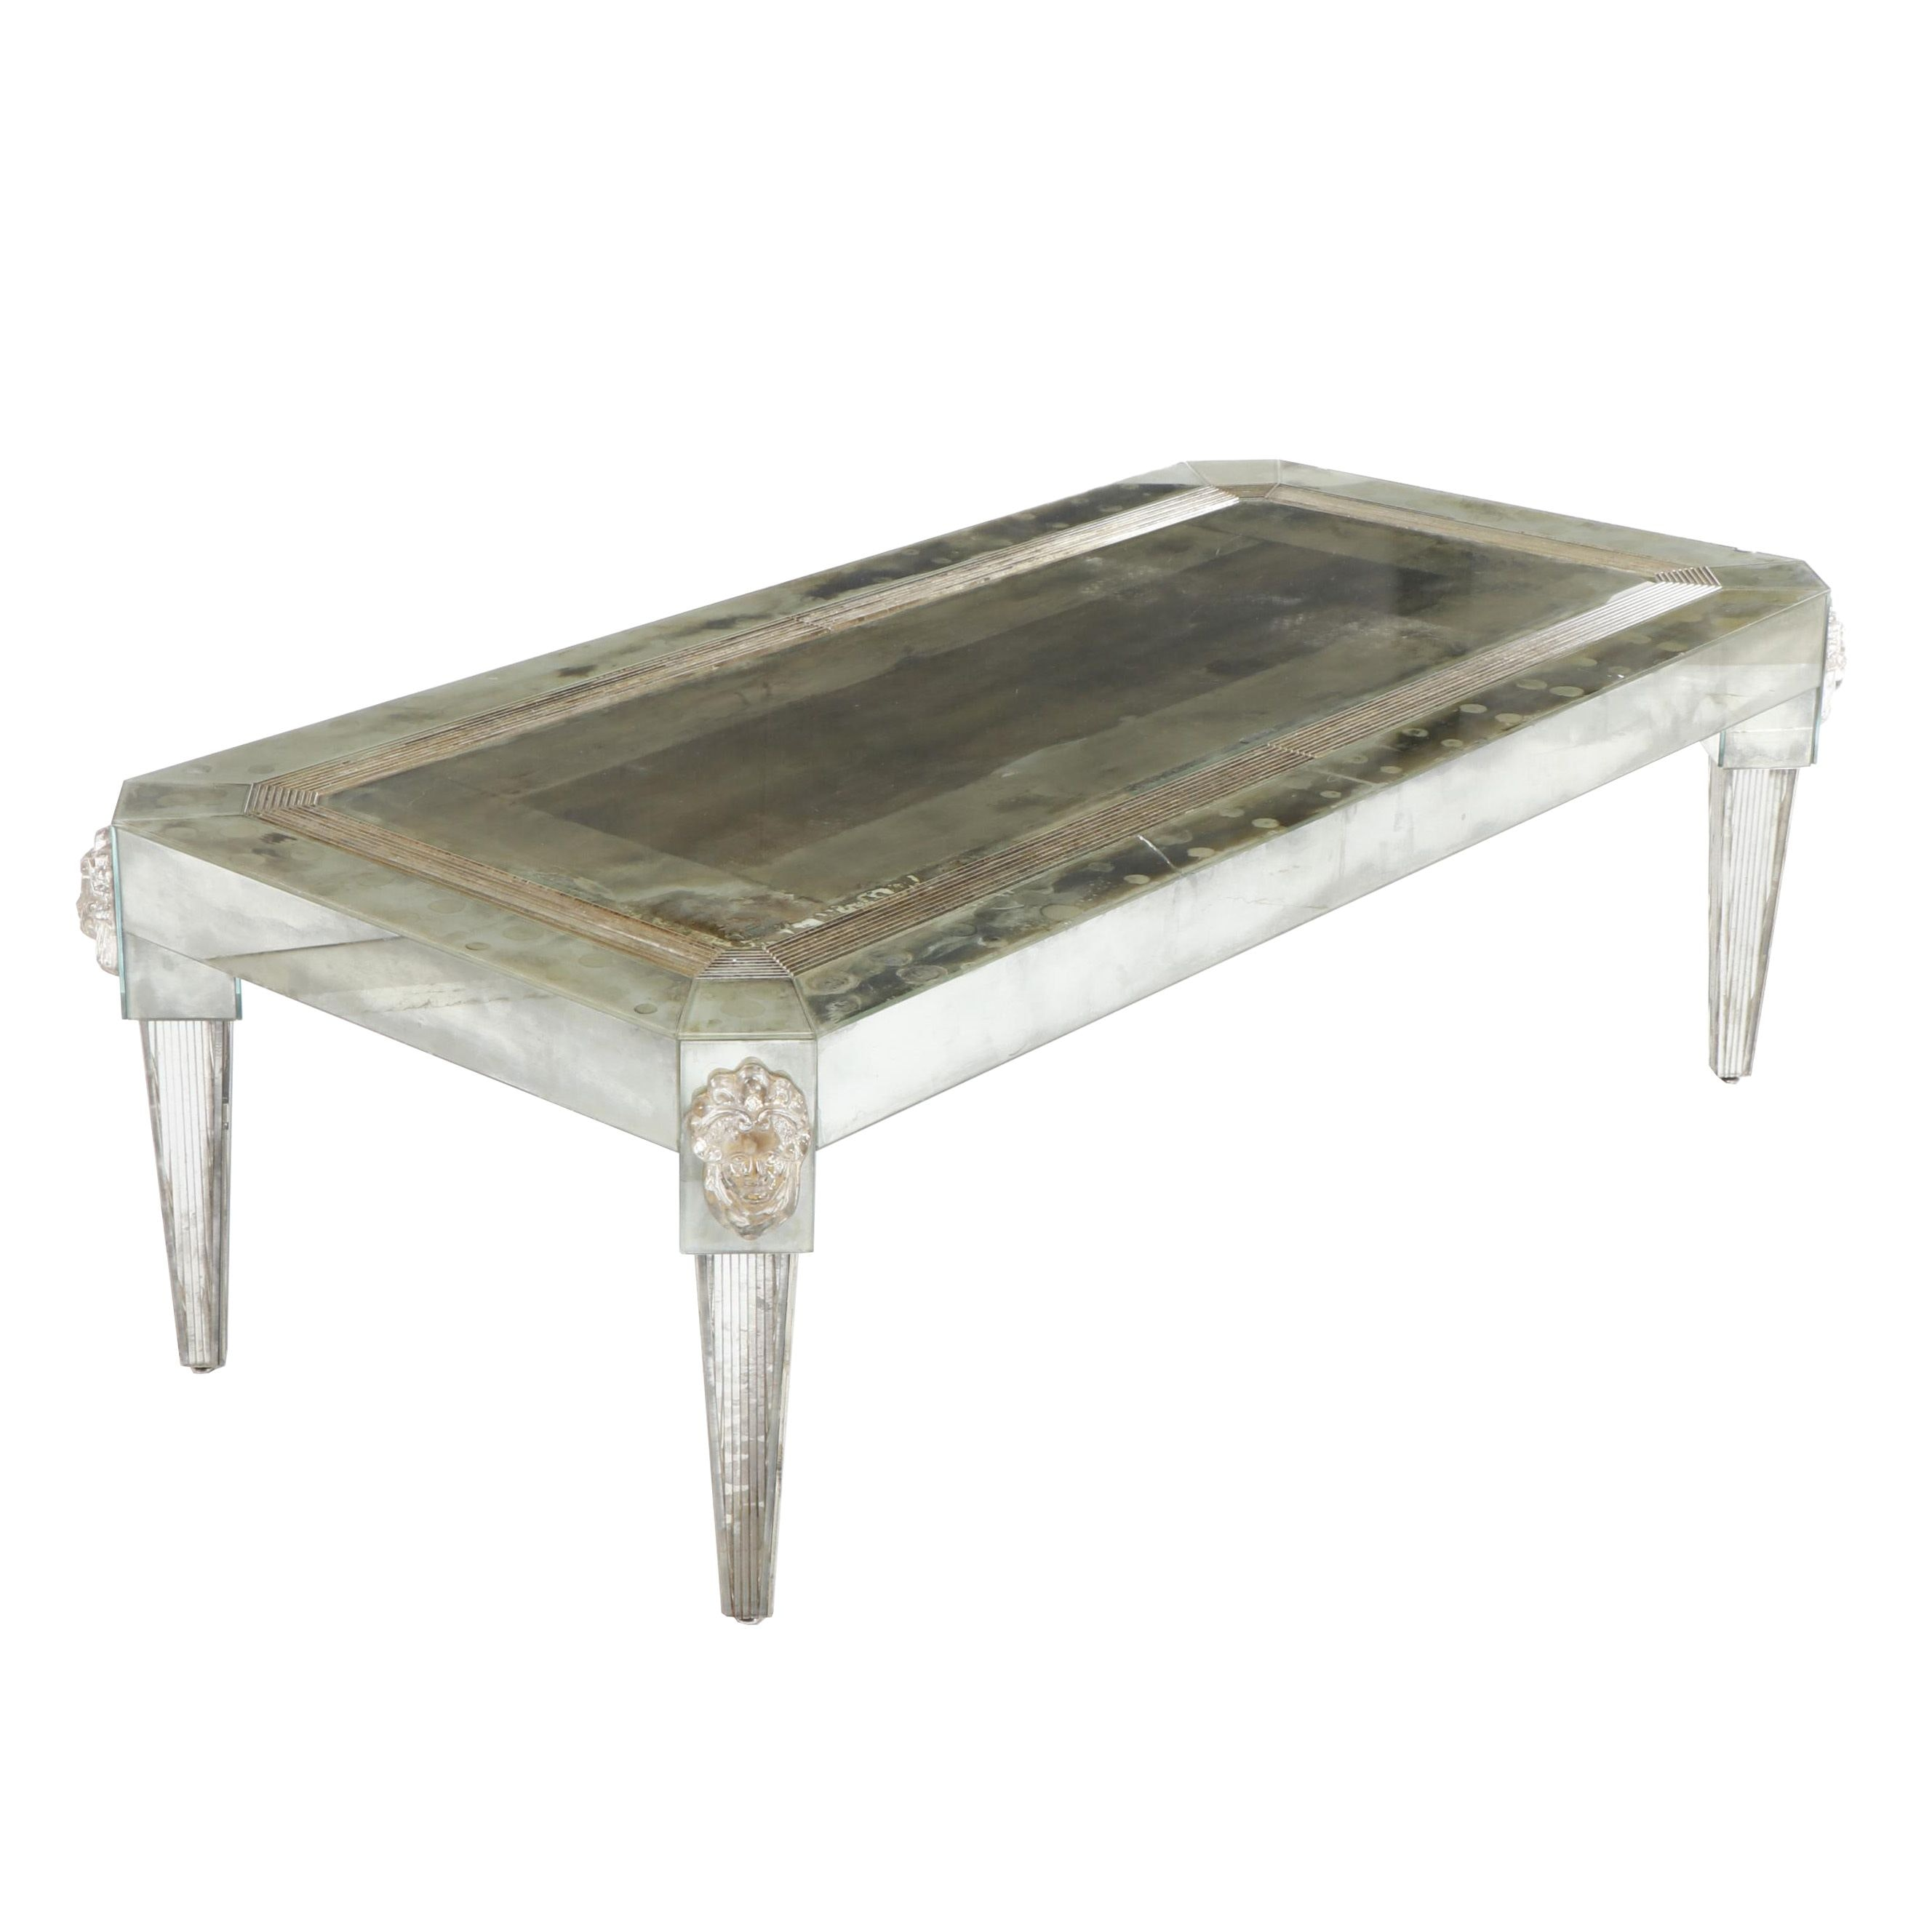 Contemporary Mirrored Neoclassical Coffee Table with Glass Portrait Mounts